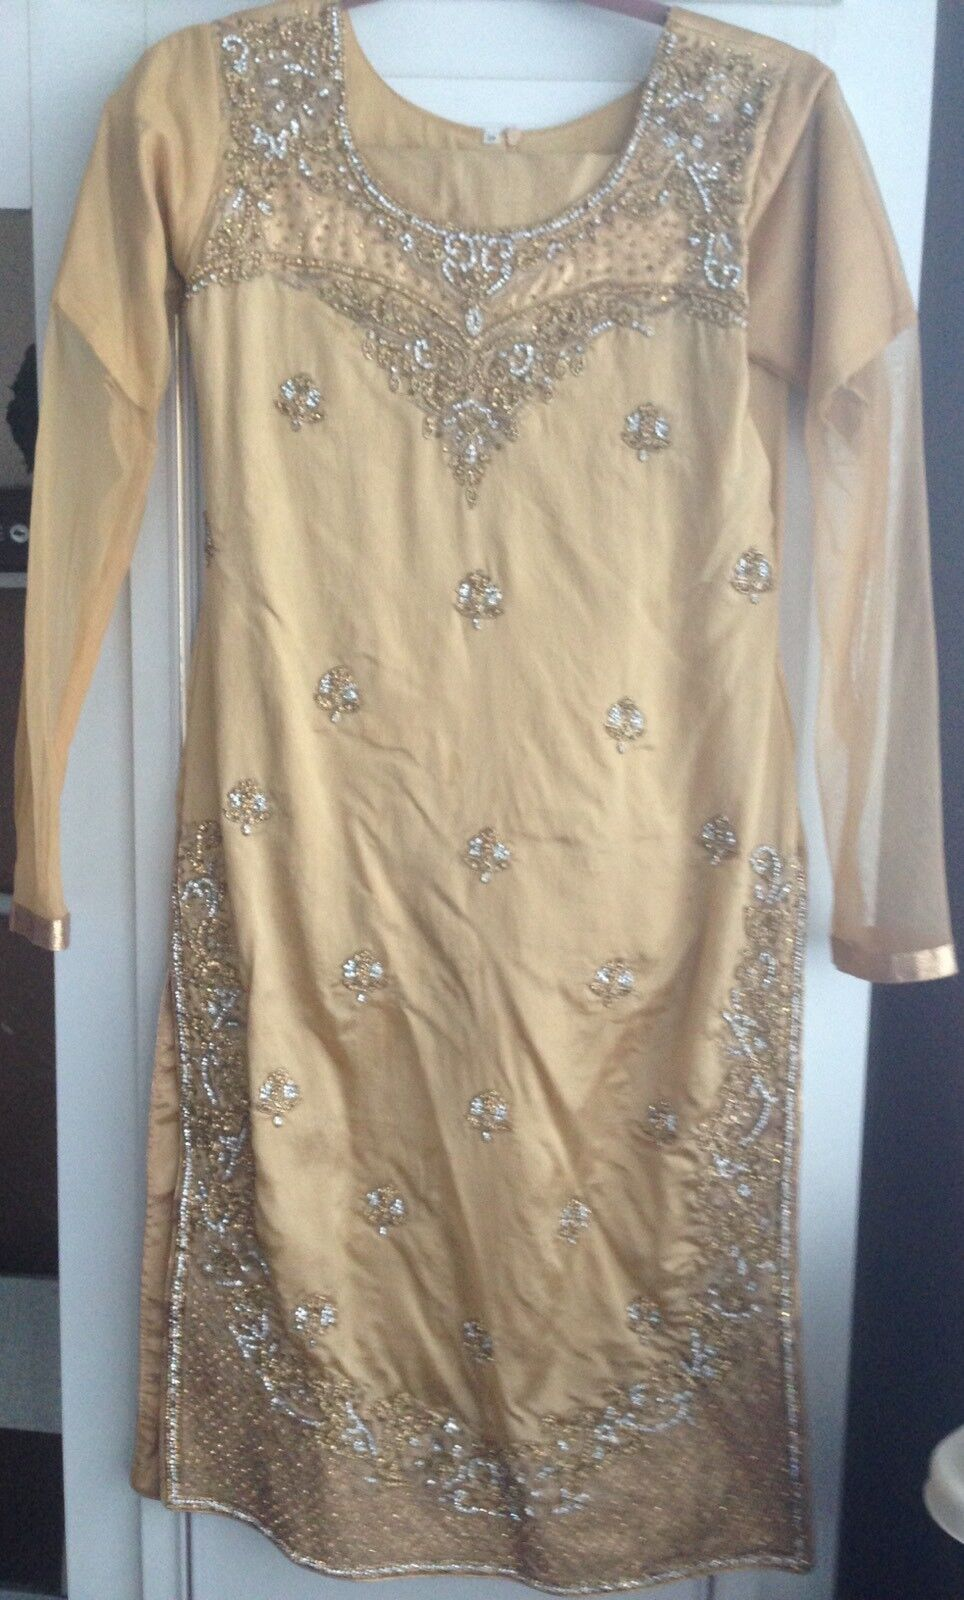 Asian Women's Nude & gold Outfit Size 8 10 For Weddings Eid Diwali Parties